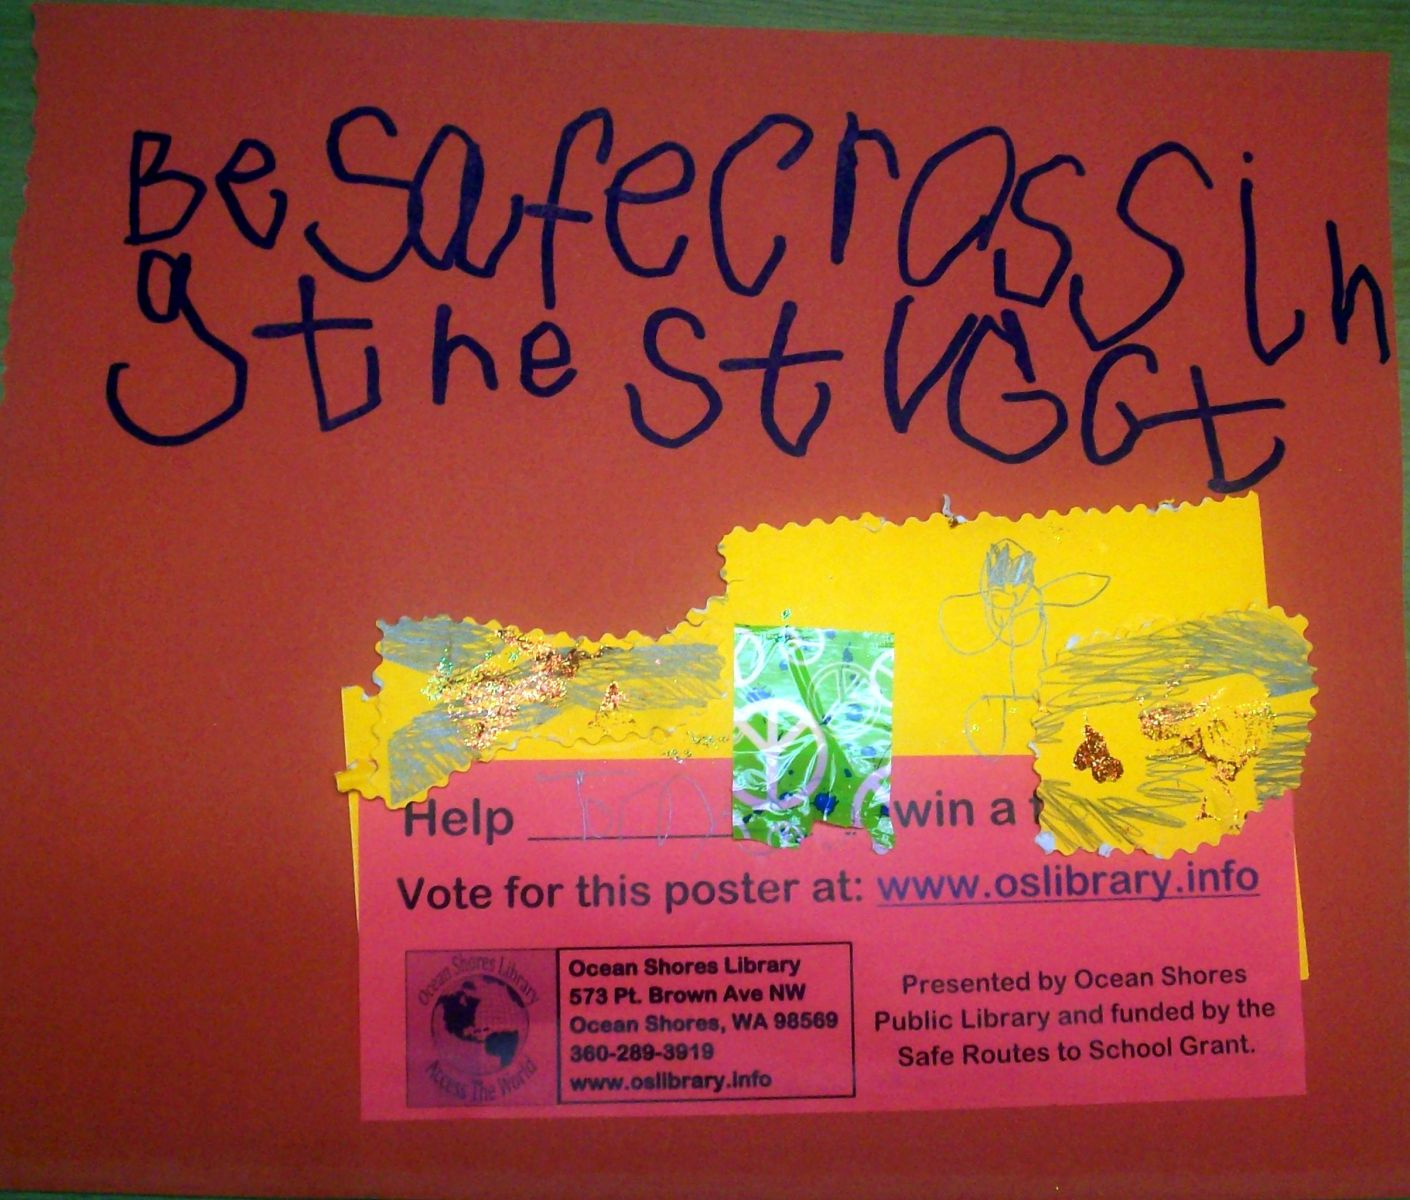 Safety Slogans Contest http://www.proprofs.com/polls/poll/?title=super-safety-slogans-poster-contest-vote-for-one-poster-featuring-their-safety-slogan